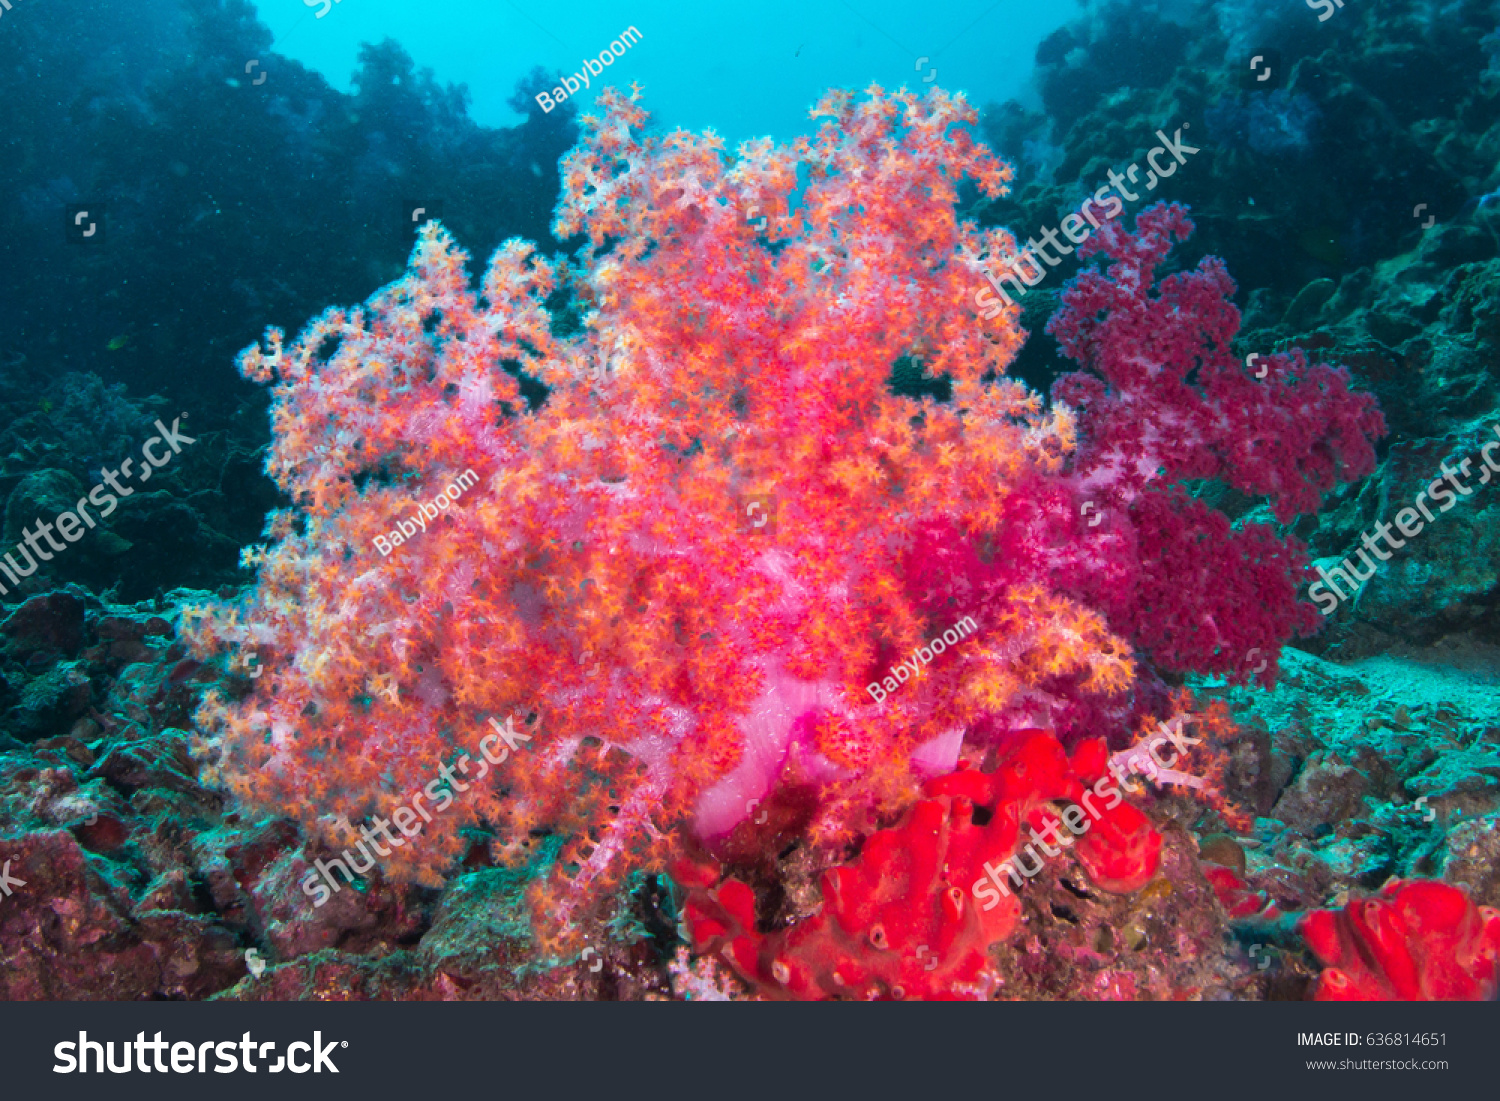 Texture Soft Carol Colorful Underwater Nature Stock Photo (Royalty ...